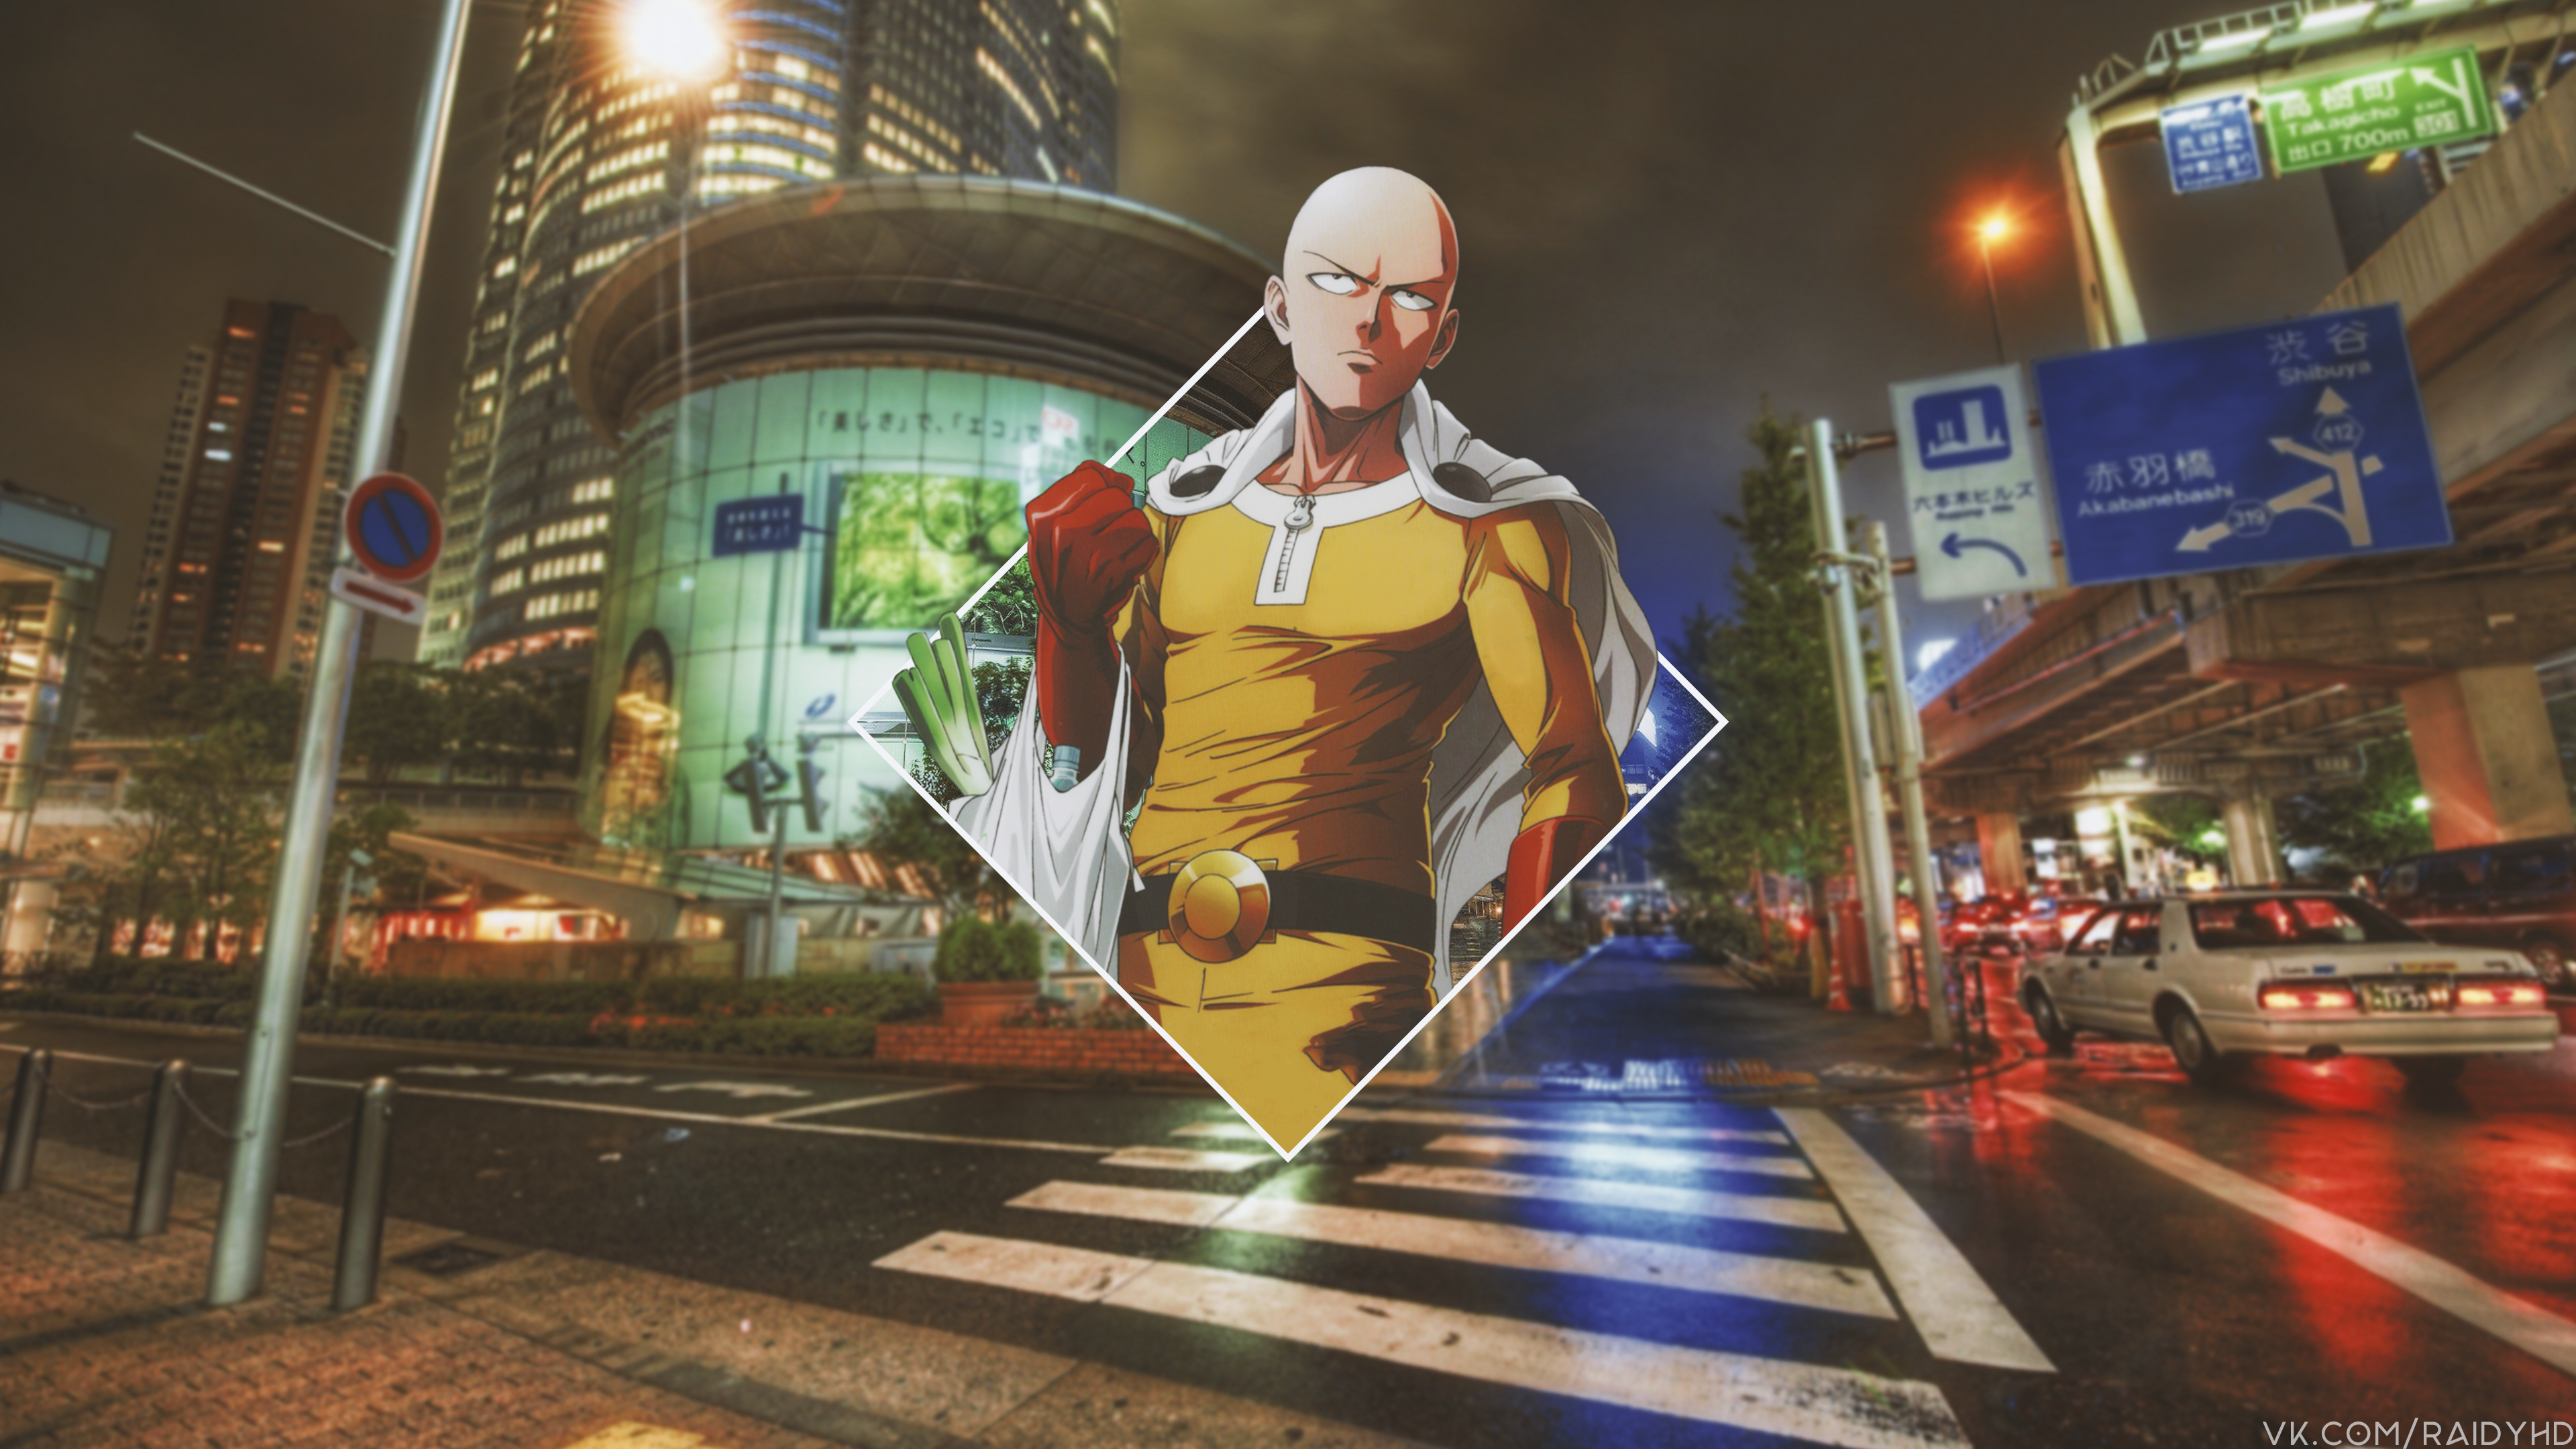 Anime 3840x2160 anime picture-in-picture anime boys Saitama One-Punch Man